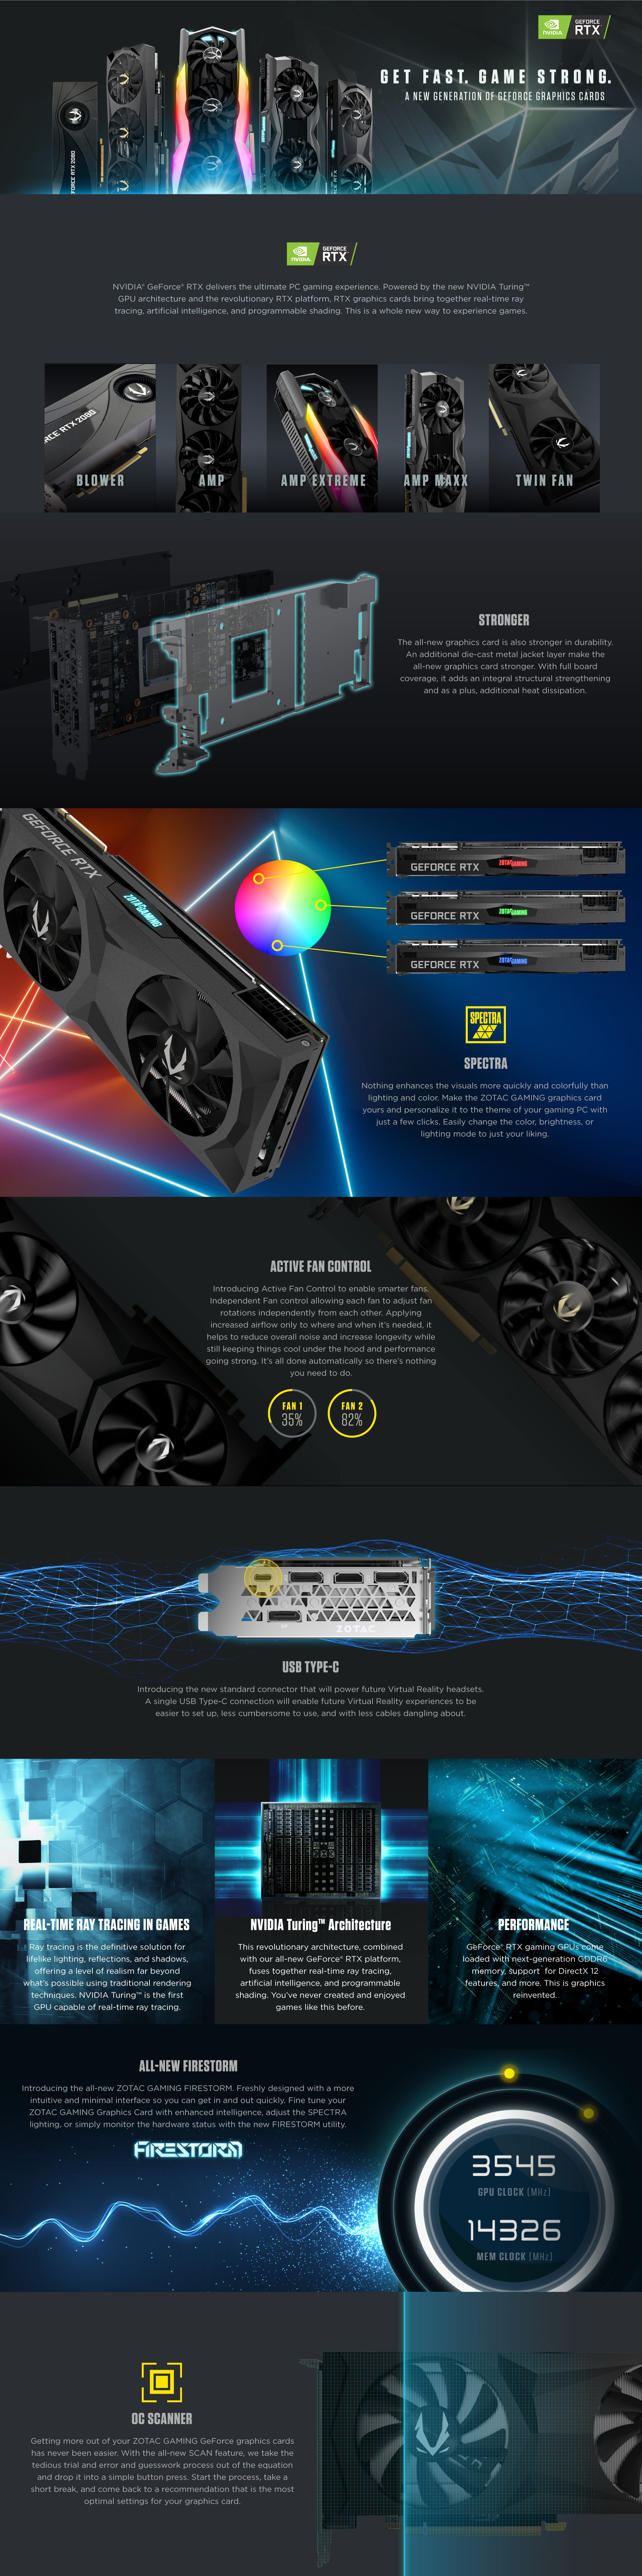 Zotac Gaming Geforce Rtx 2080 Ti Twin Fan Zotac